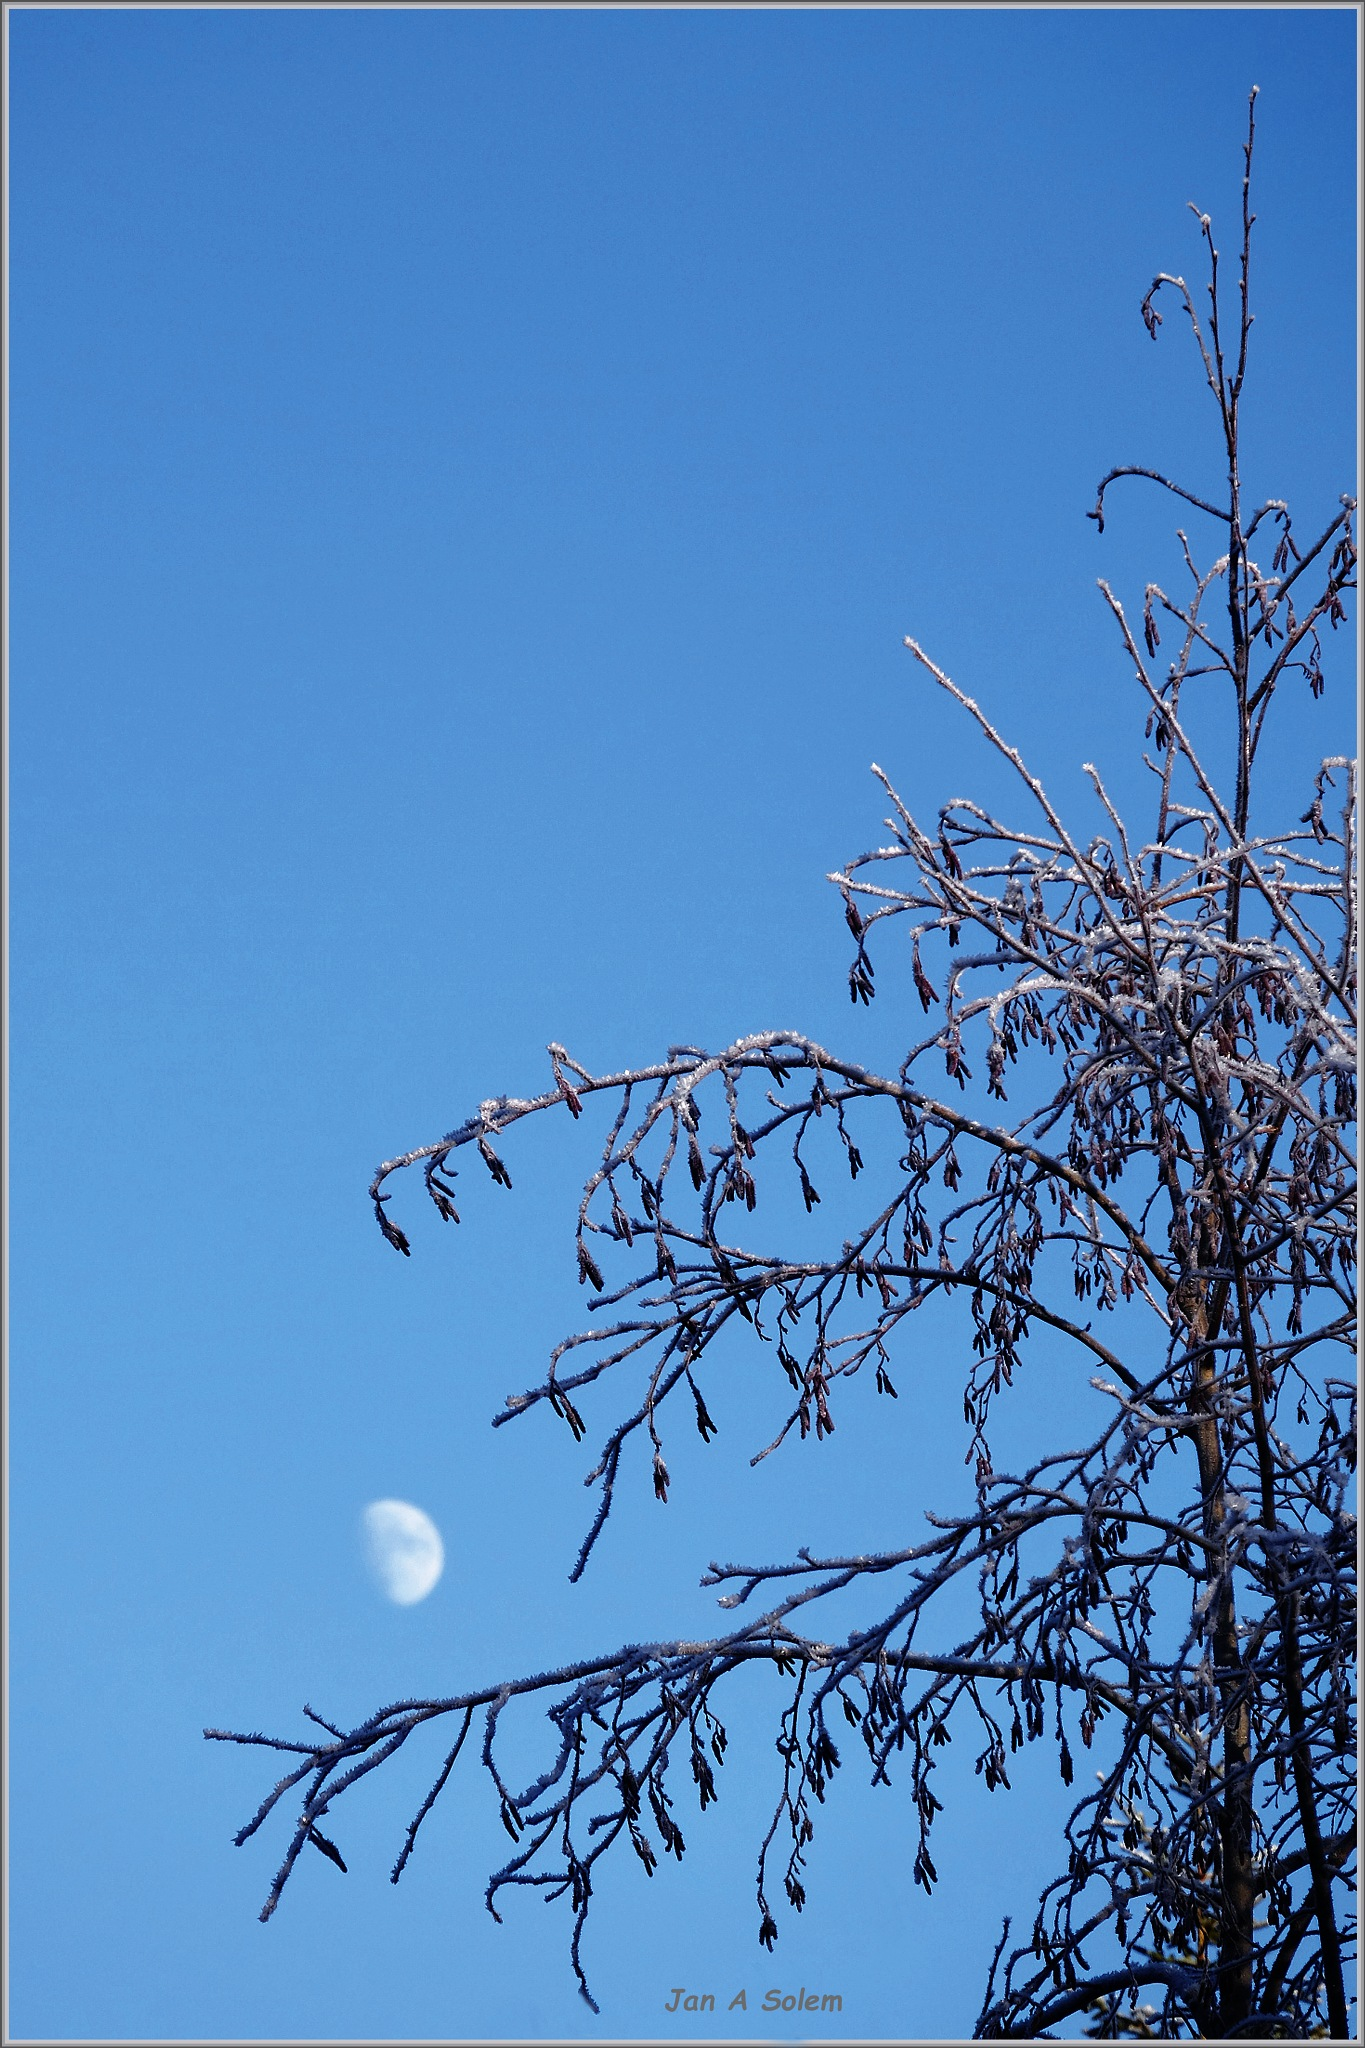 February Blue by Jan Arvid Solem